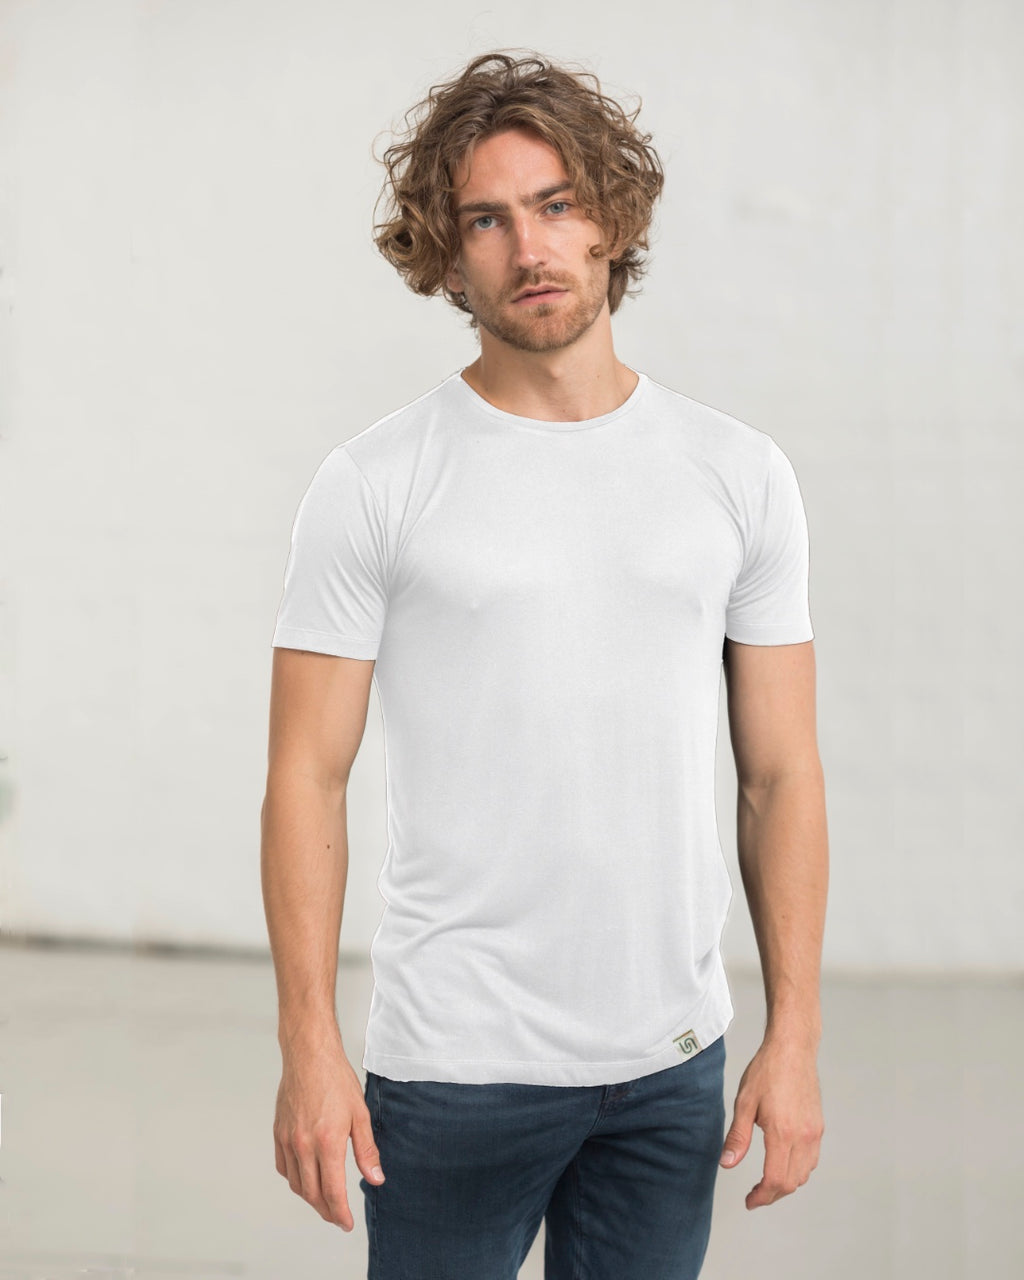 The Tree Shirt short sleeve, sustainable, vegan and plastic free t-shirt - colour: white